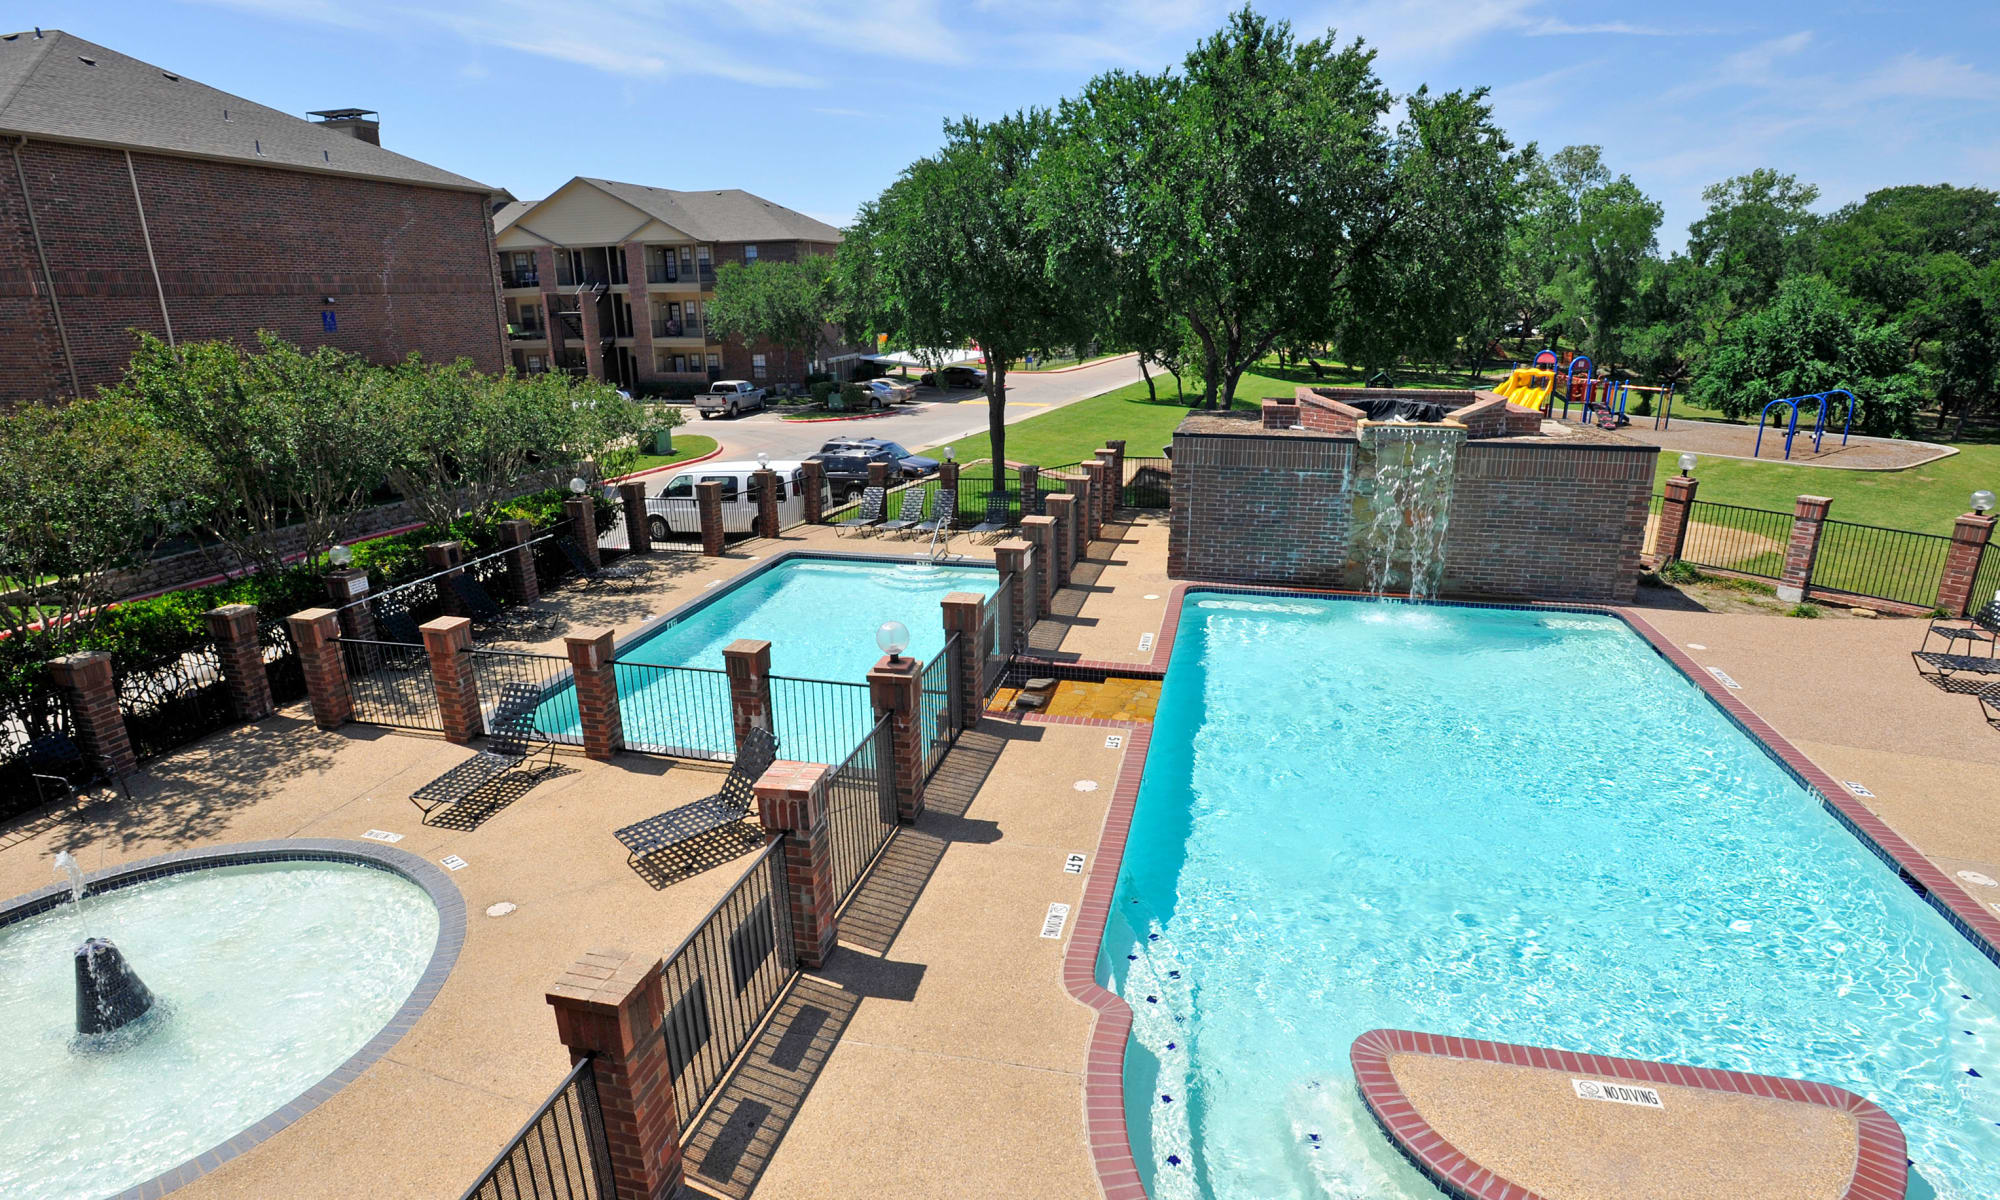 Apartments at Carrollton Park of North Dallas in Dallas, Texas